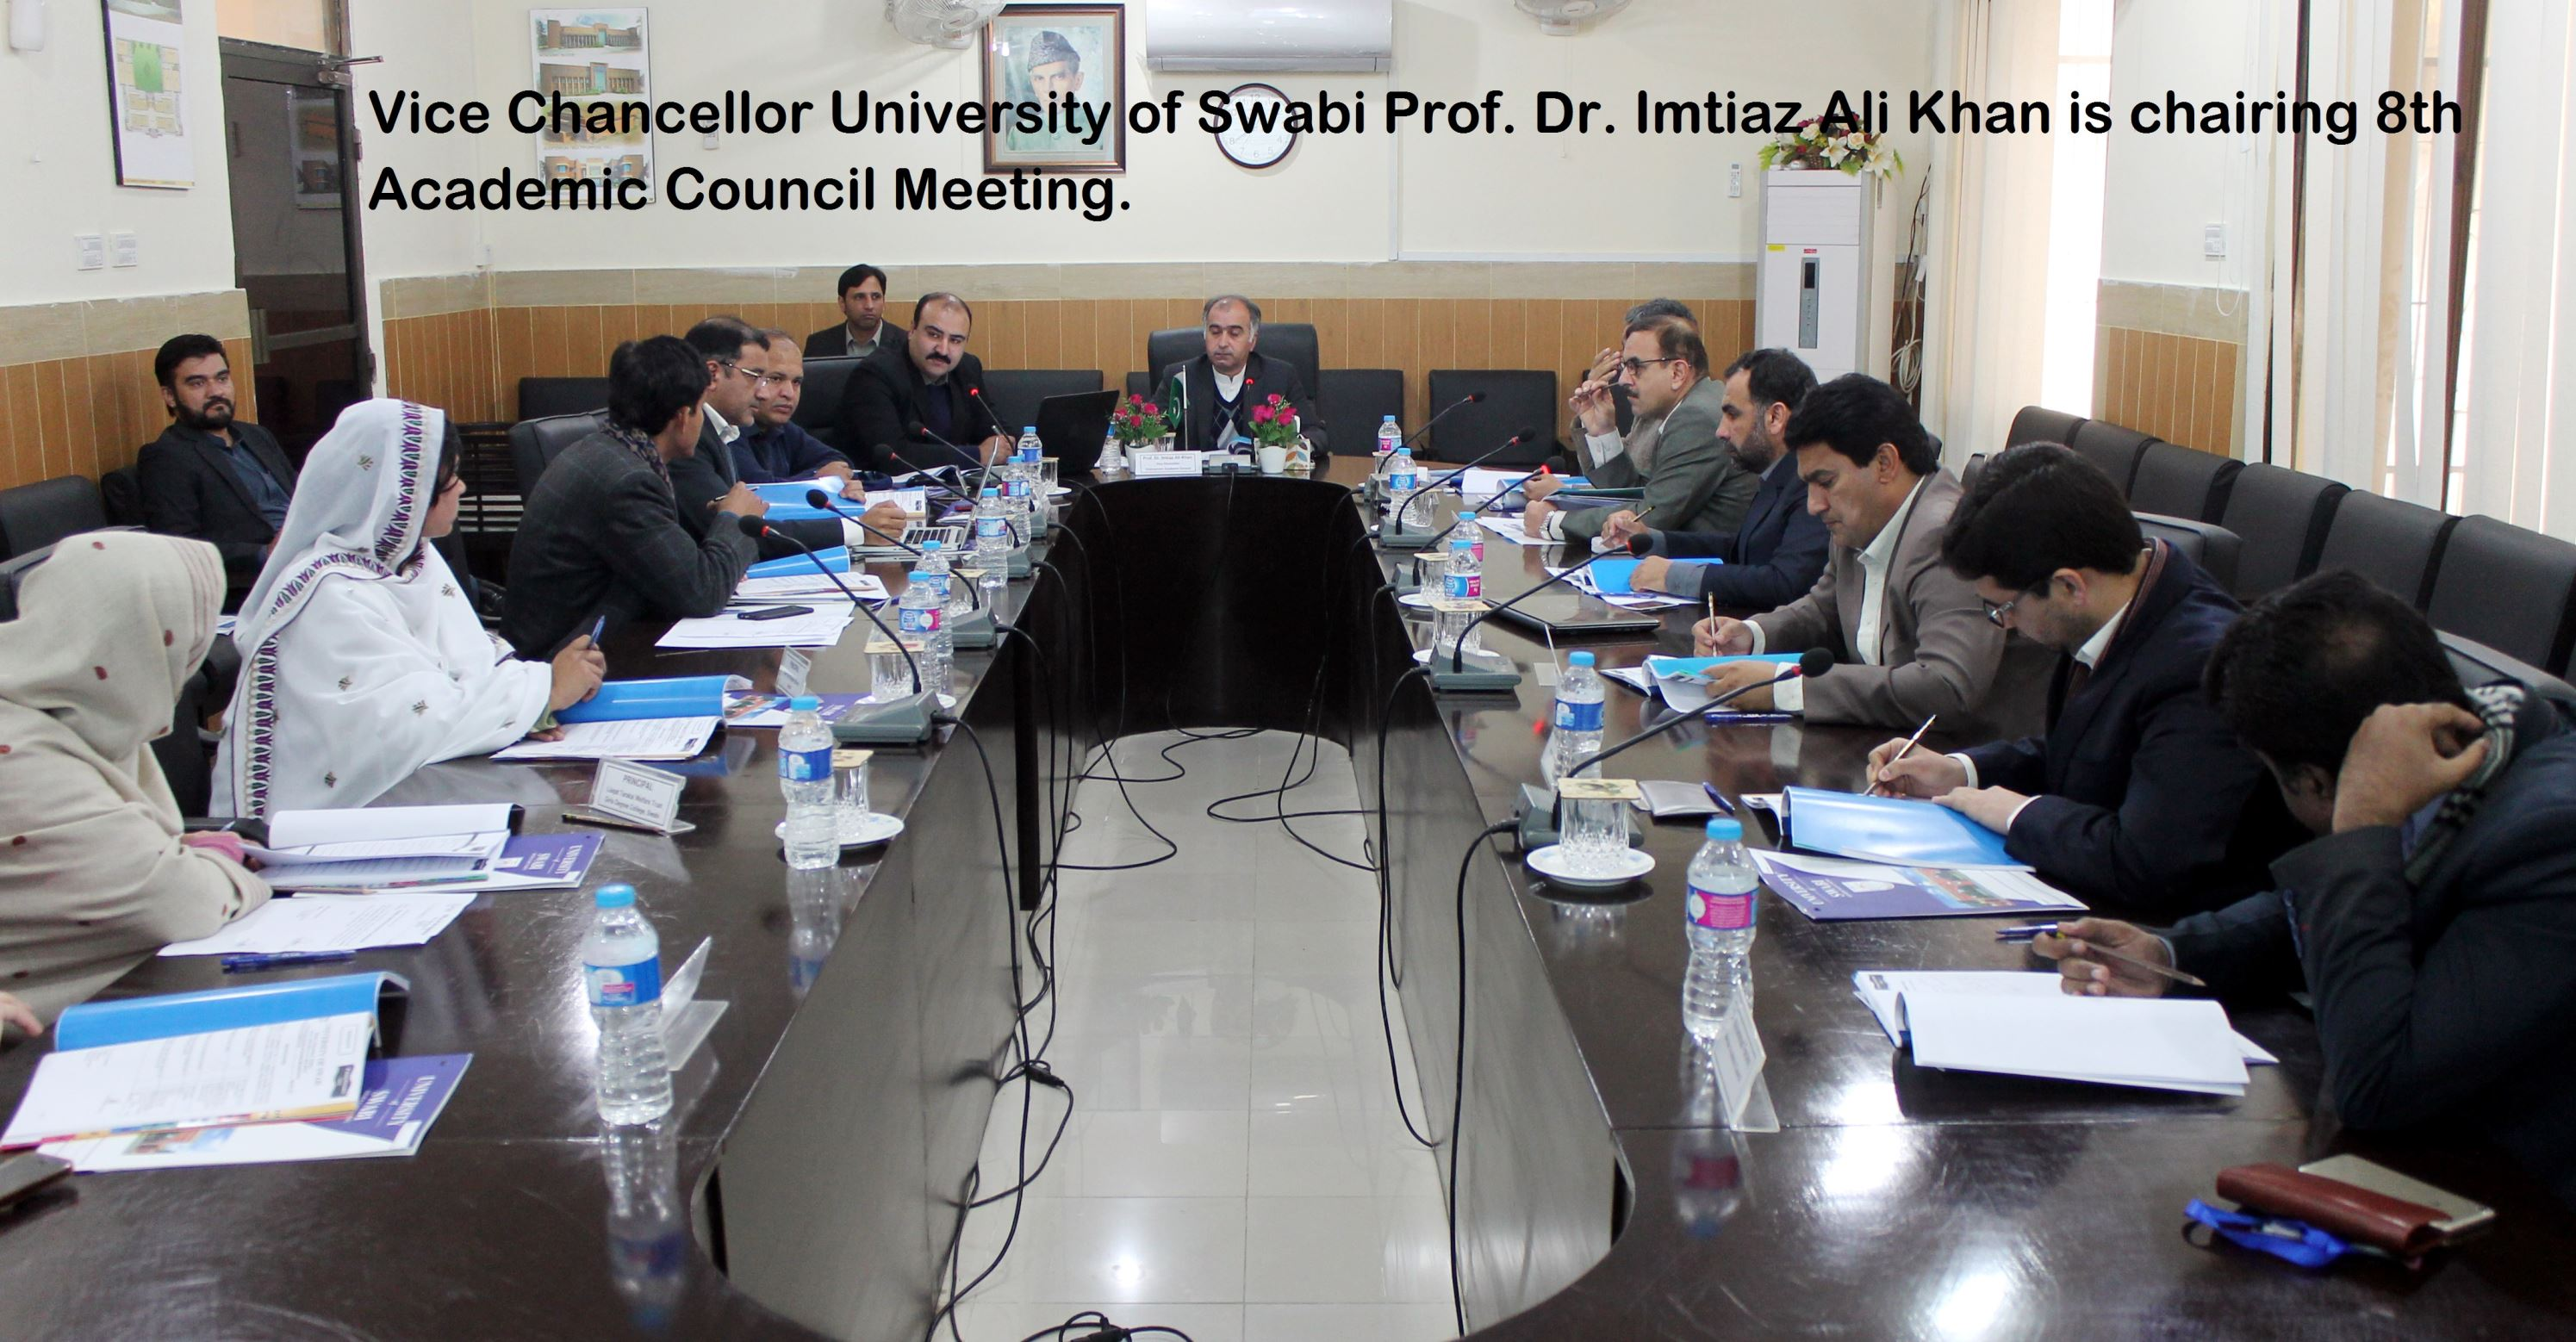 Vice Chancellor University of Swabi Prof. Dr. Imtiaz Ali Khan chairing 8th Academic Council Meeting.